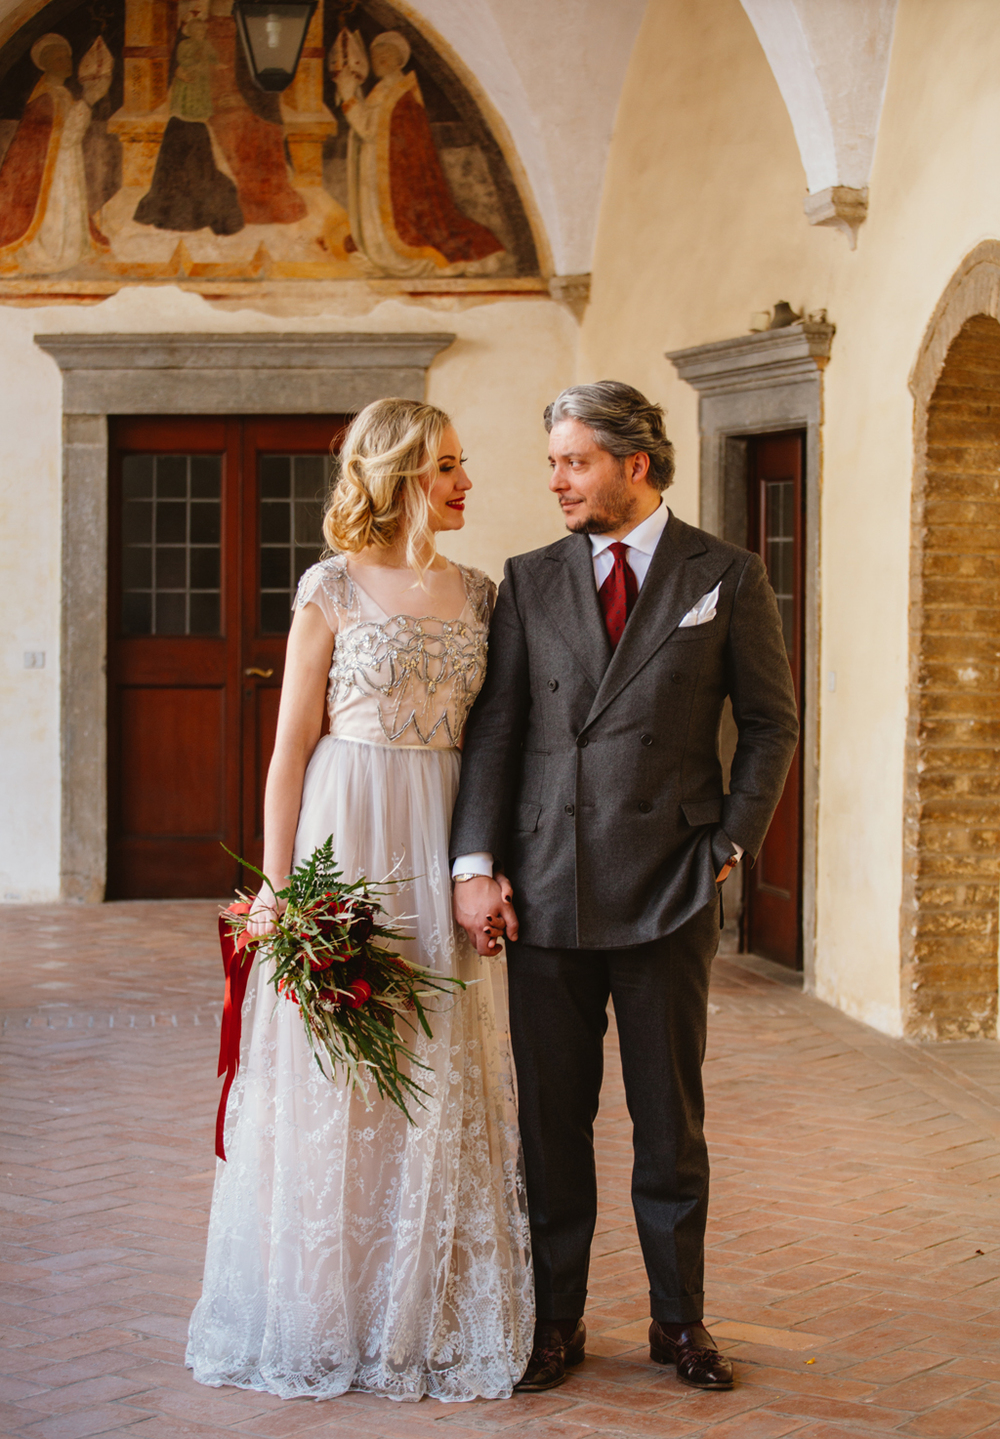 romantic & natural wedding photography in italy, sue-slique photography